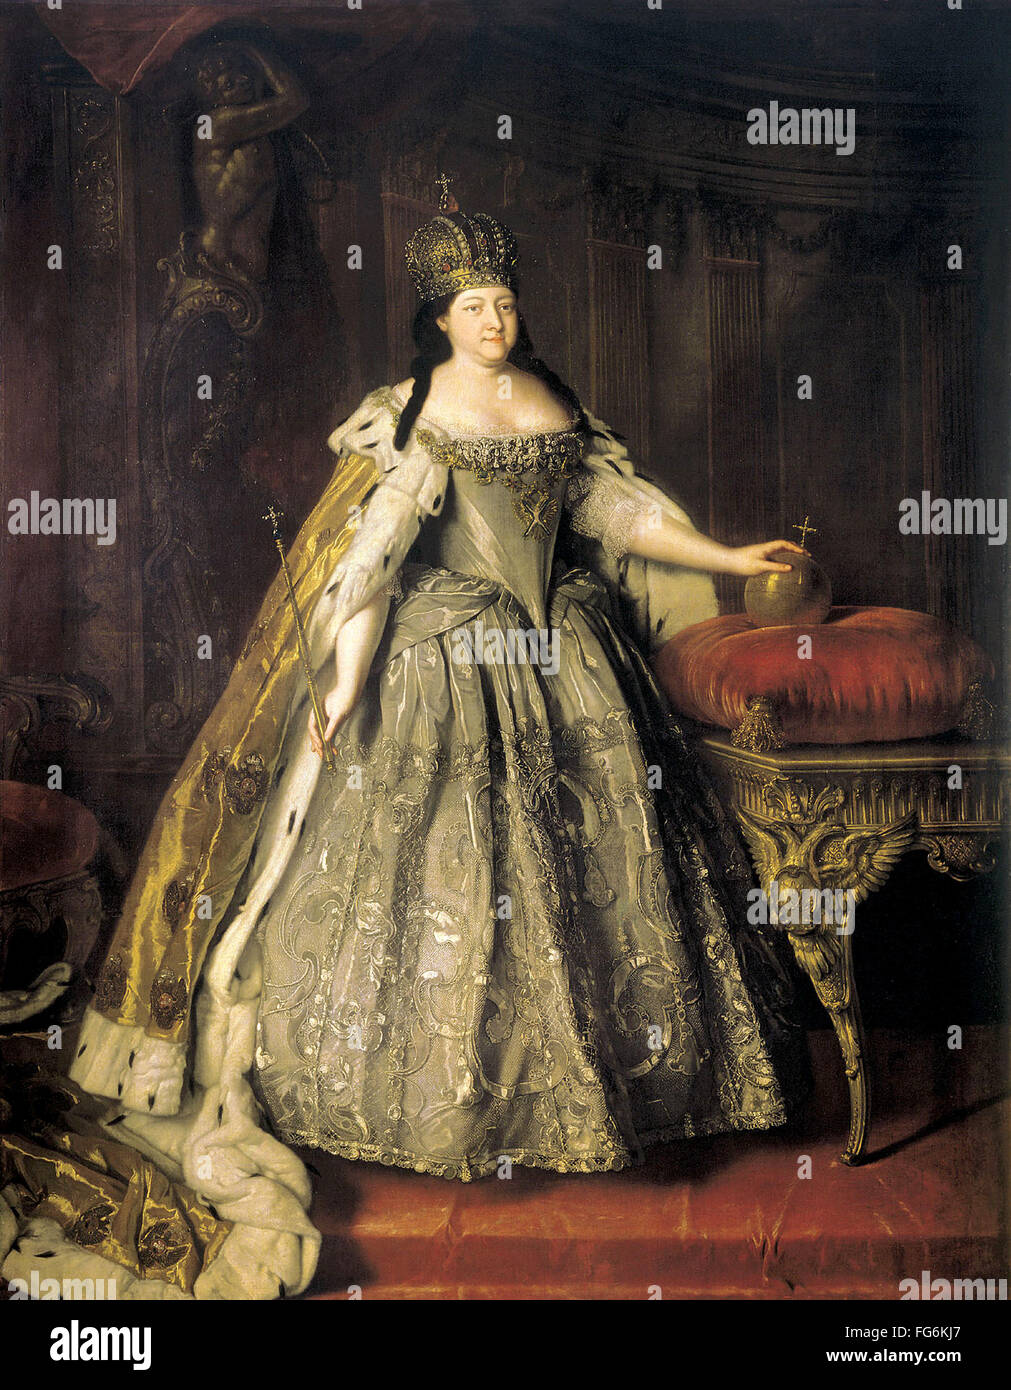 Anna of Russia, Anna Ioannovna, Anna Ivanovna, Empress of Russia from 1730 to 1740. - Stock Image